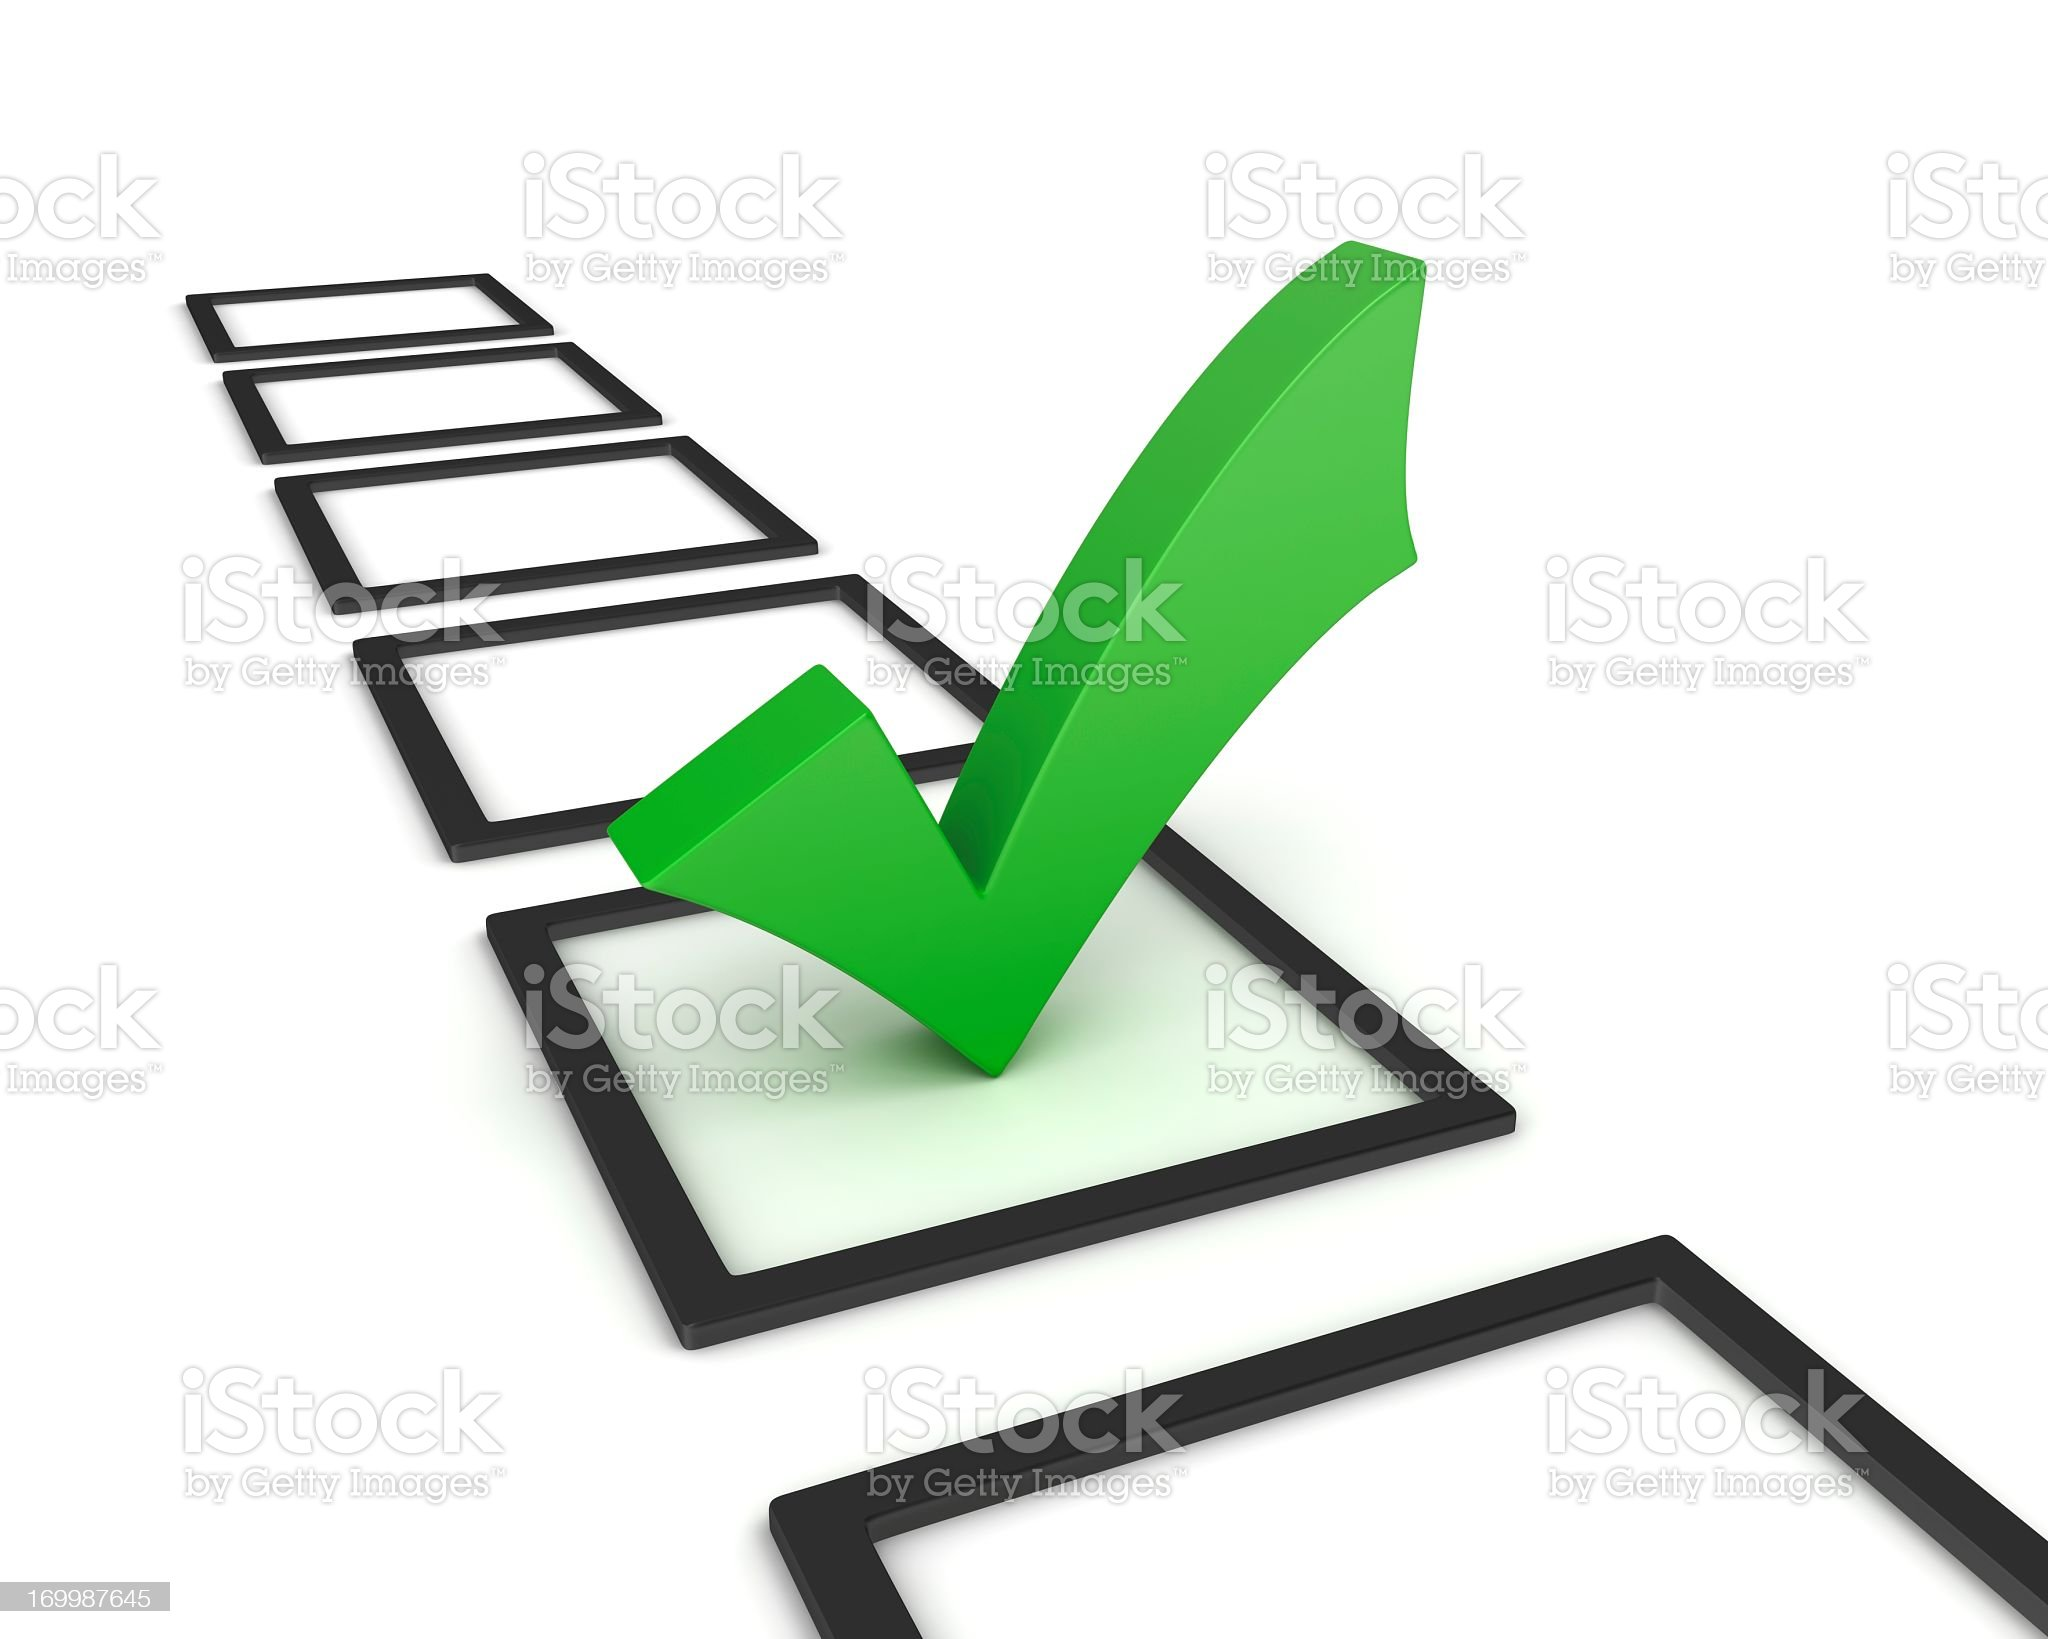 Blank checkboxes with a green 3D check mark on one of them royalty-free stock photo